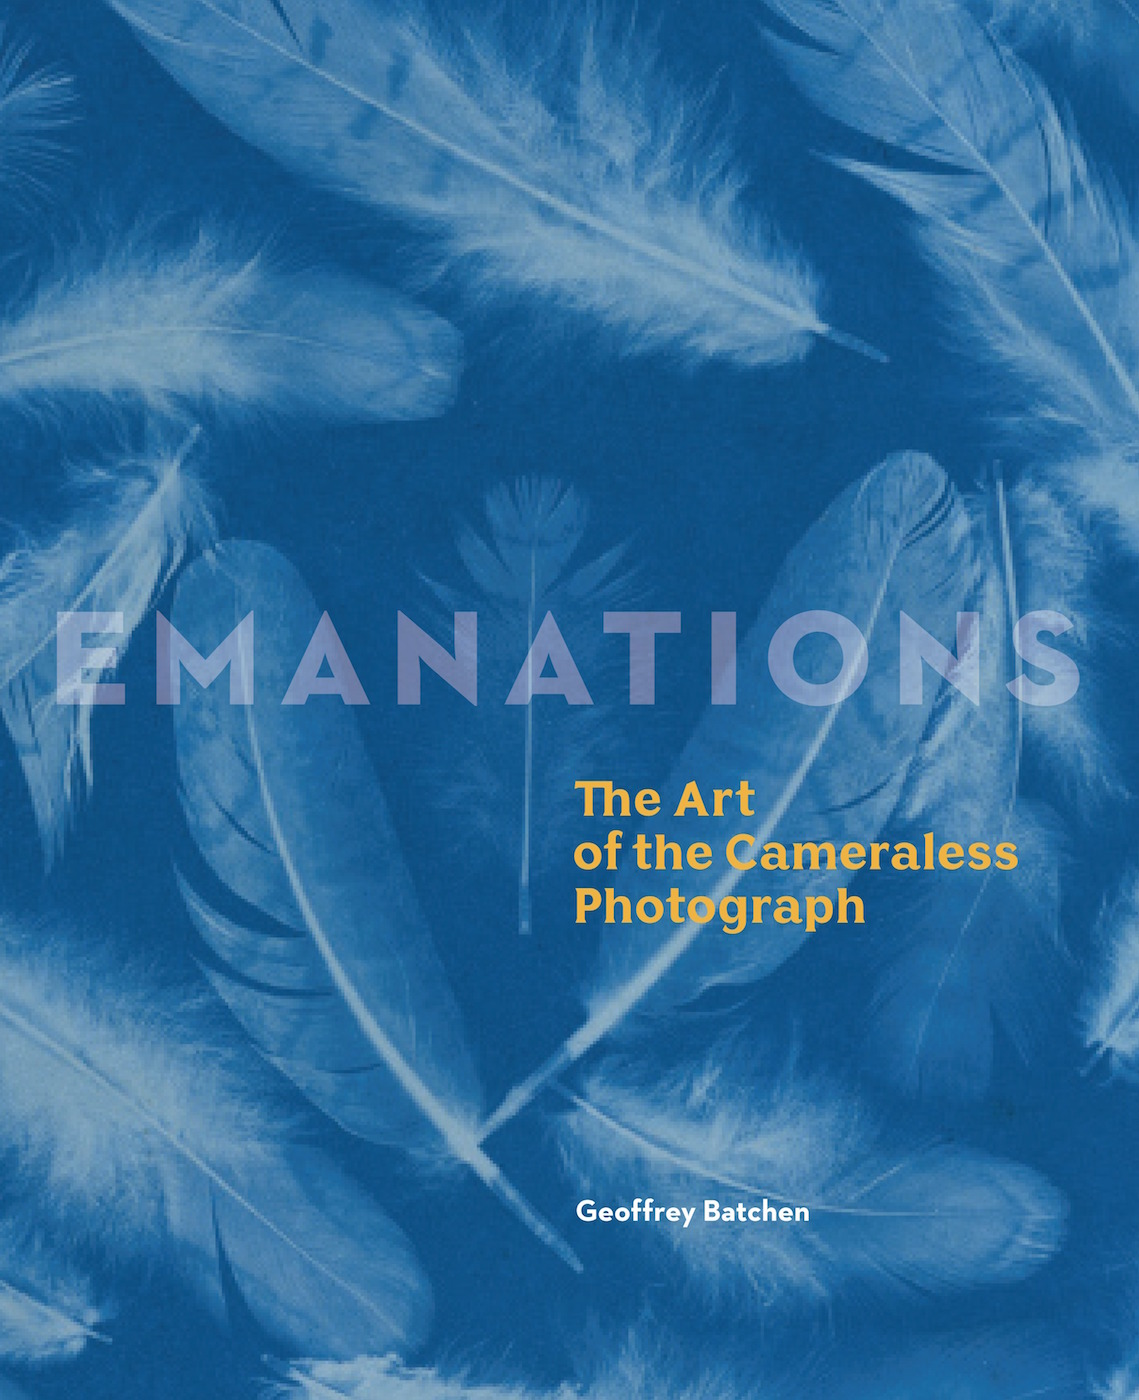 Cover of 'Emanations: The Art of the Cameraless Photograph' (courtesy Prestel)